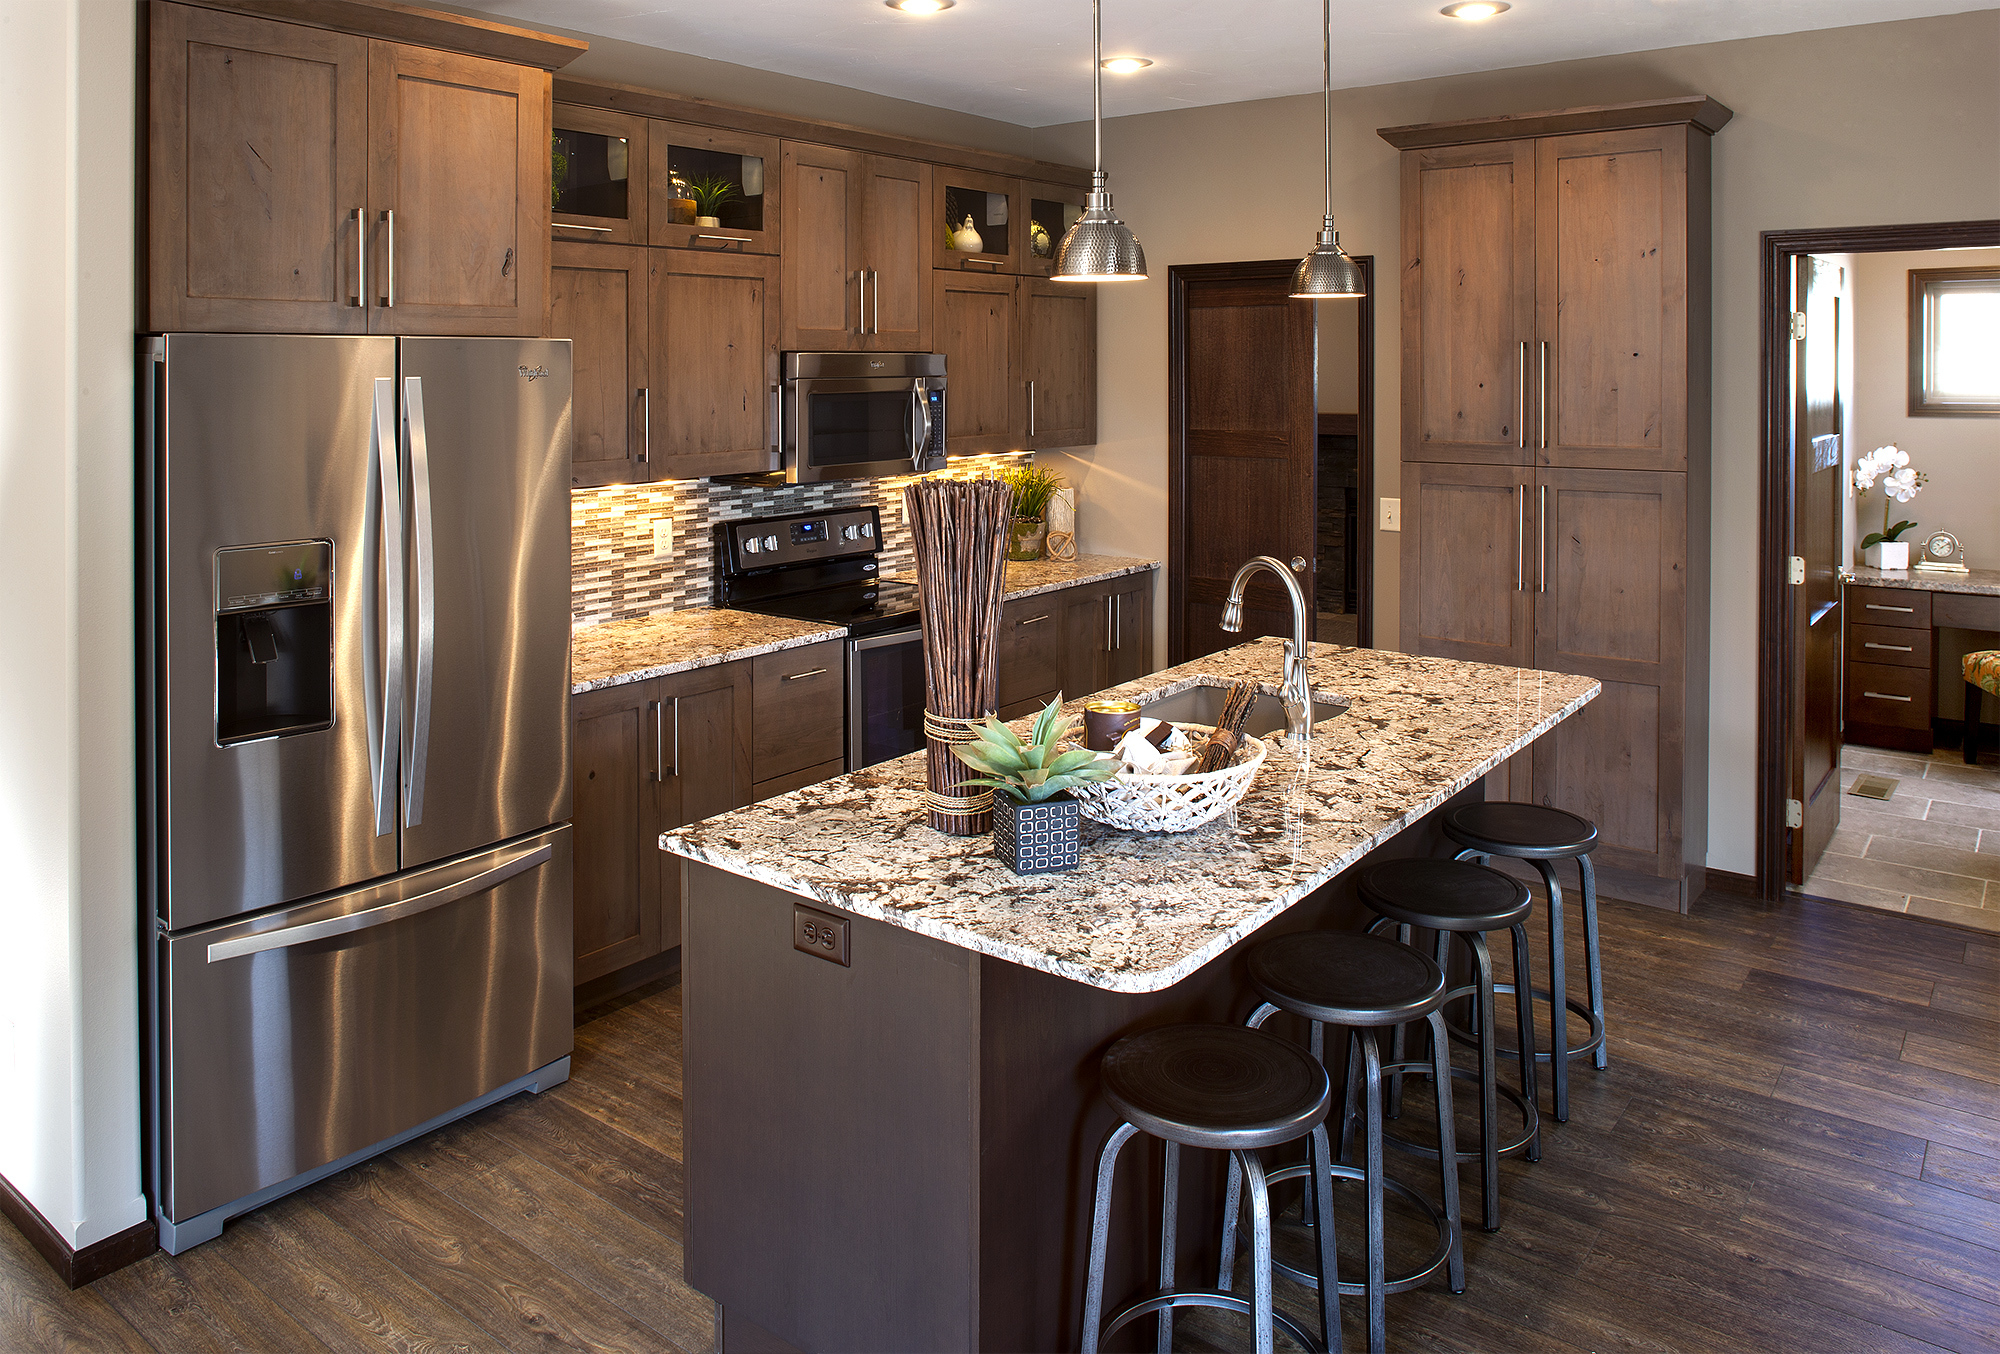 Stained Kitchen Cabinets in Rockport and Island in Peppercorn by ShowplaceEVO - view 1